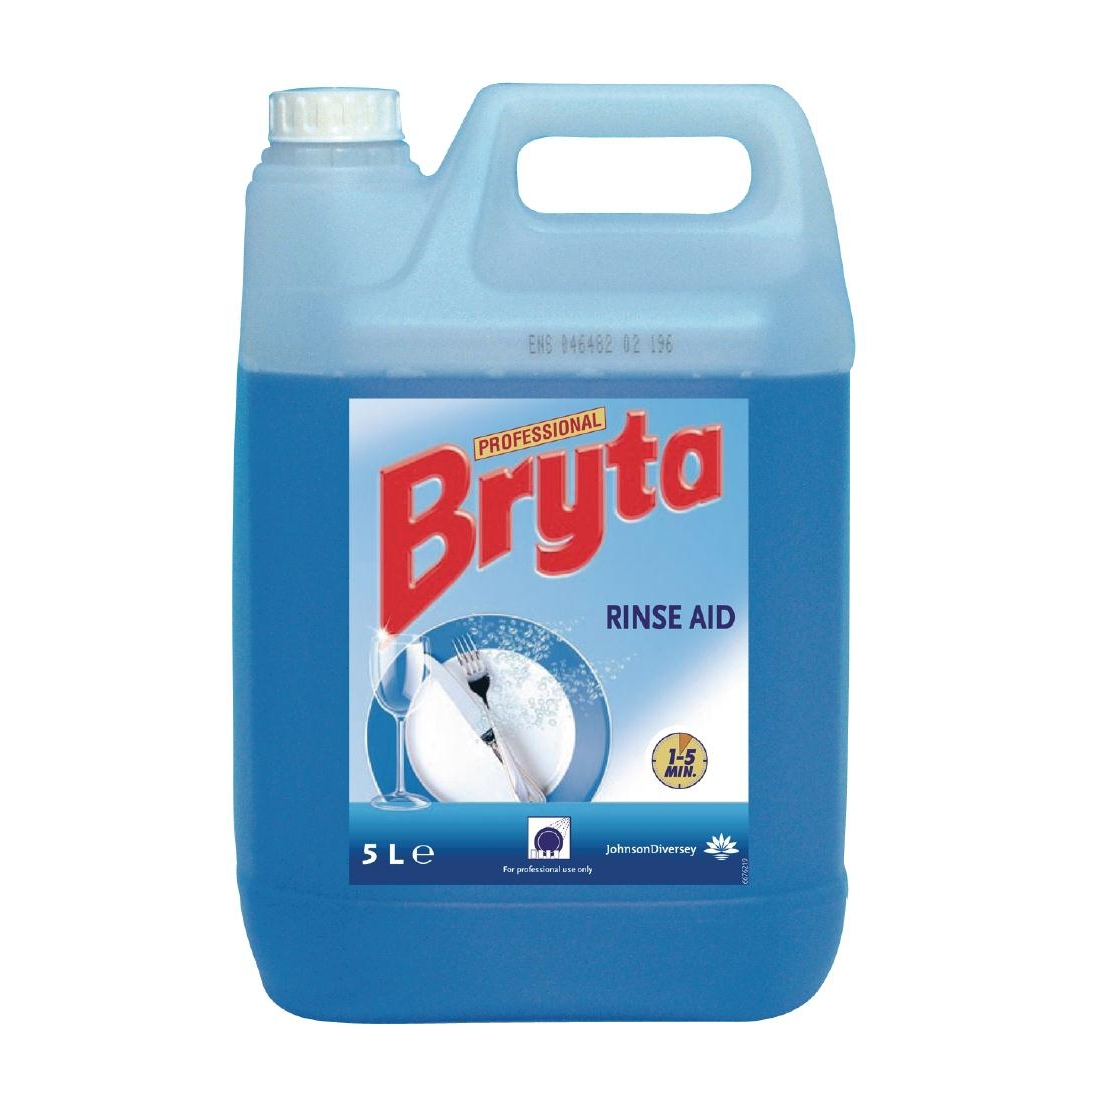 Bryta Rinse Aid 5 Litre (Pack of 2)